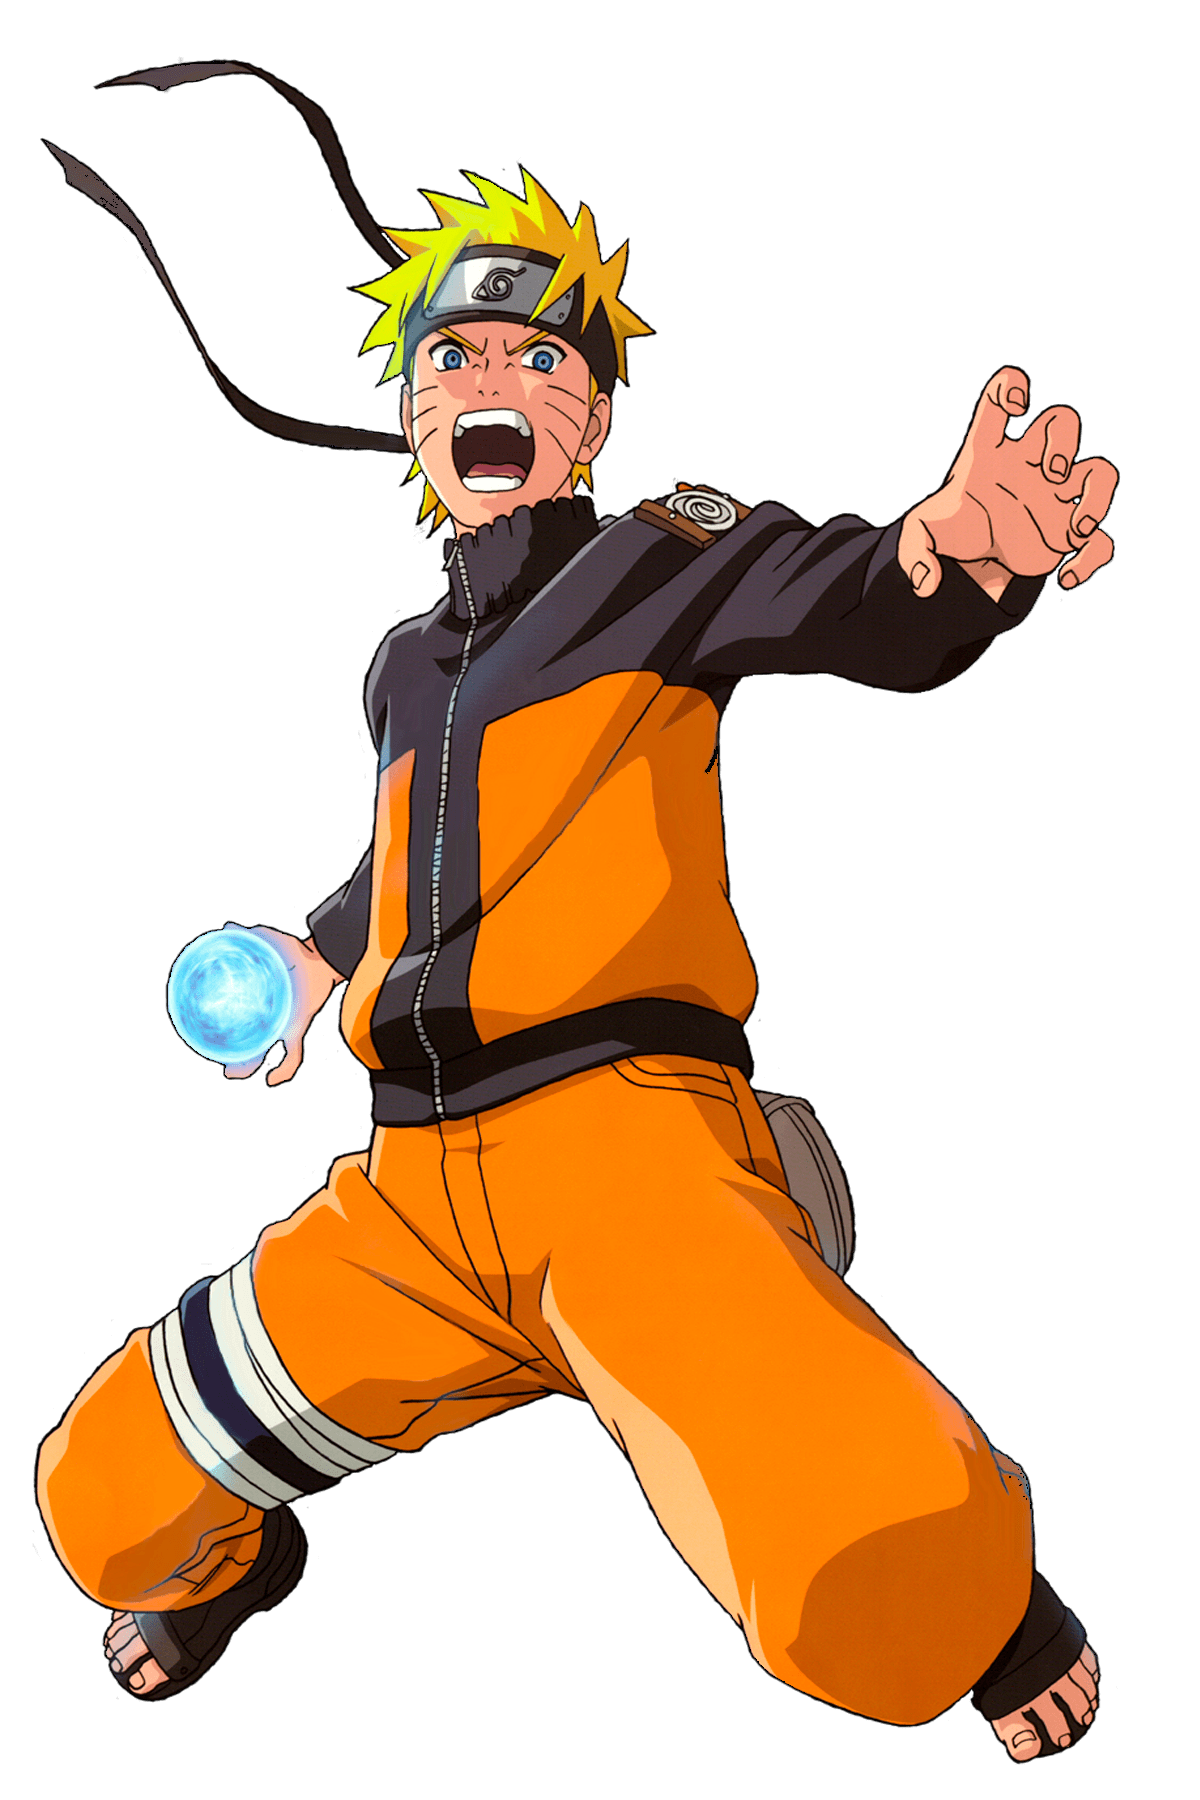 Cool clipart naruto. Throwing ball transparent png